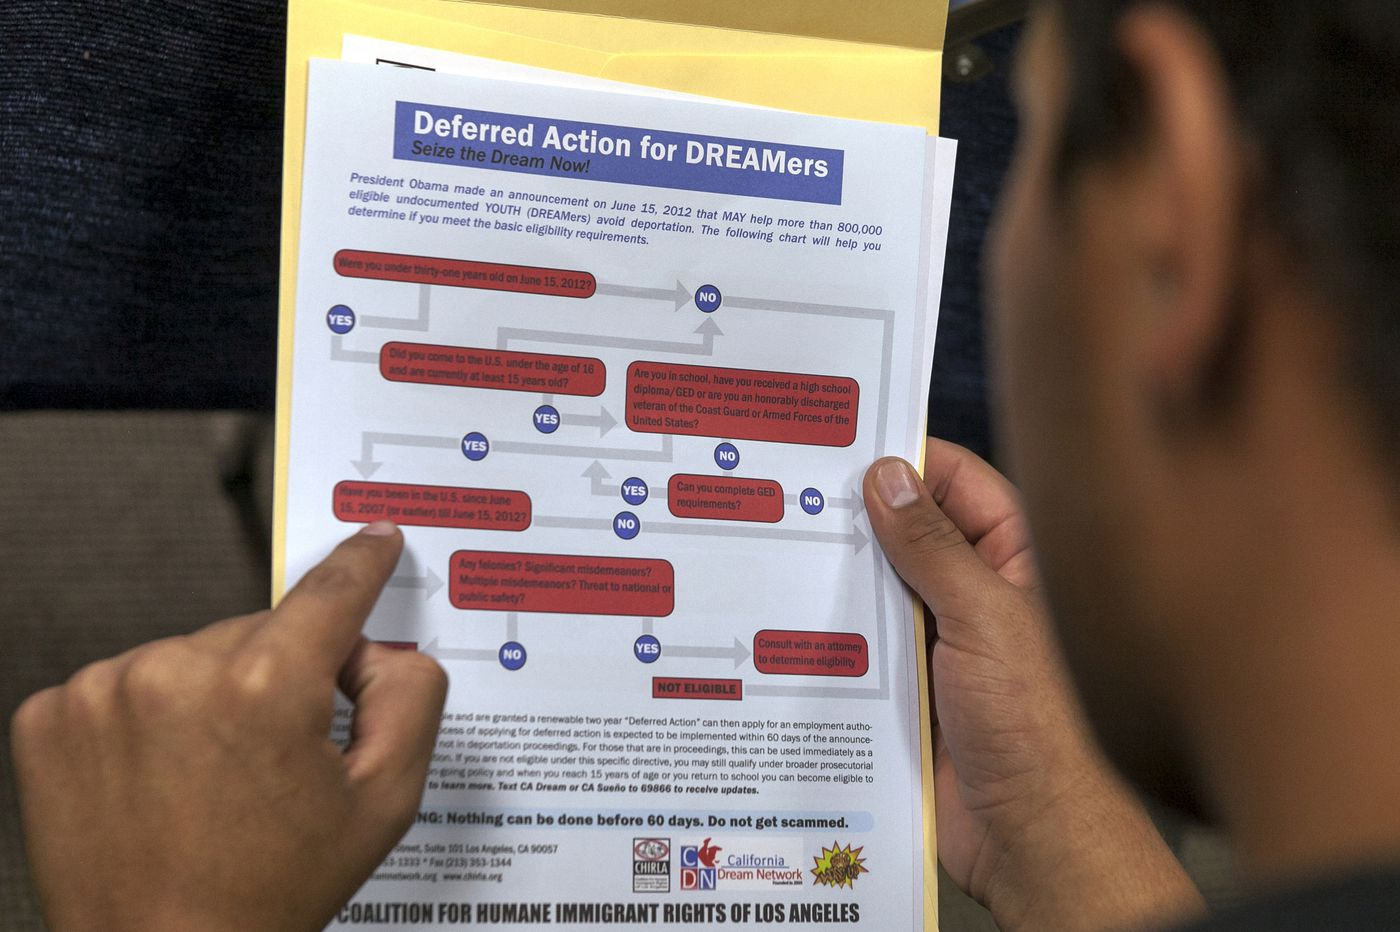 Appeals court rules against Trump on DACA immigrant policy